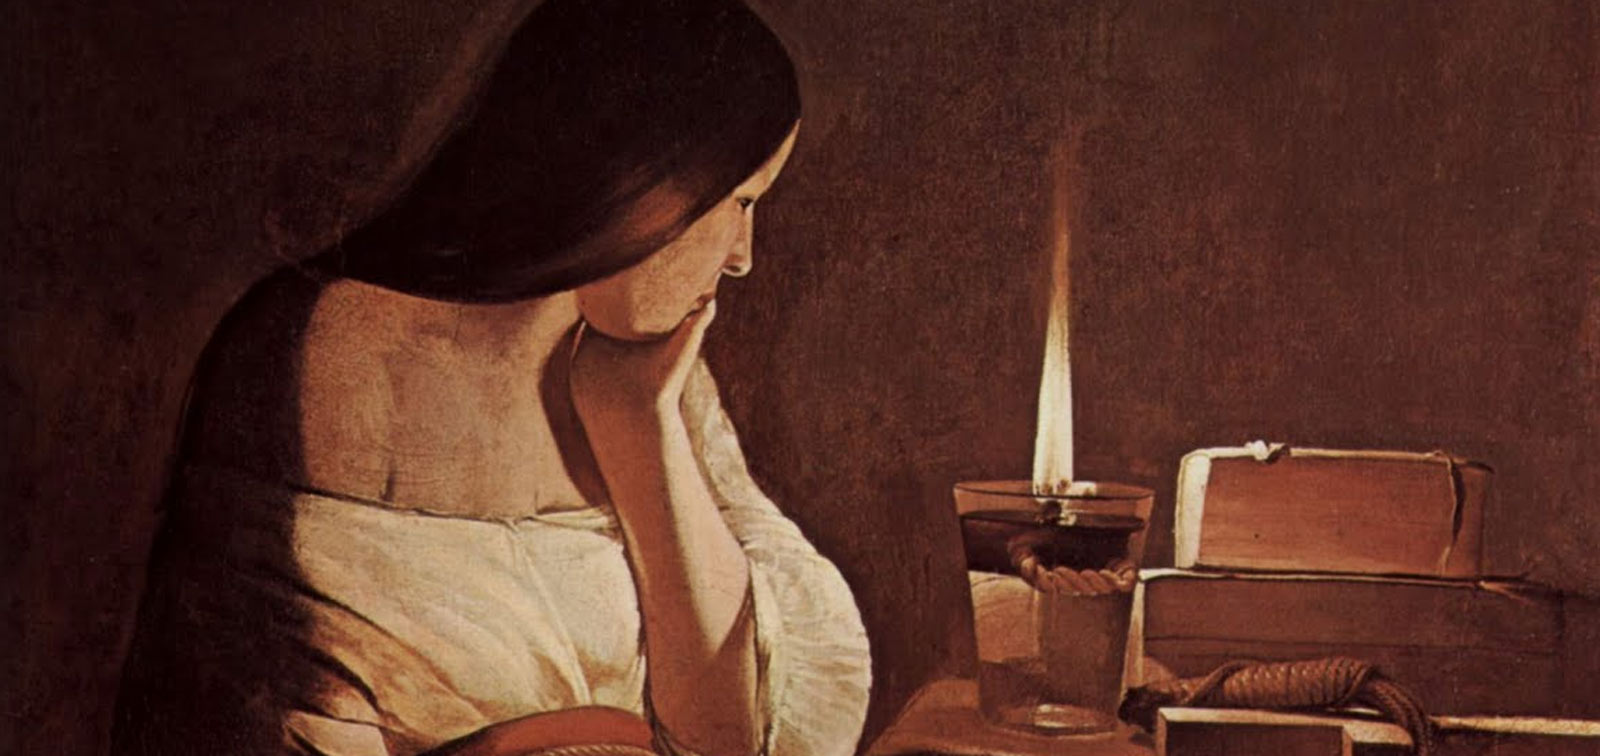 Invited Work. La Madeleine à la Veilleuse, by Georges de La Tour